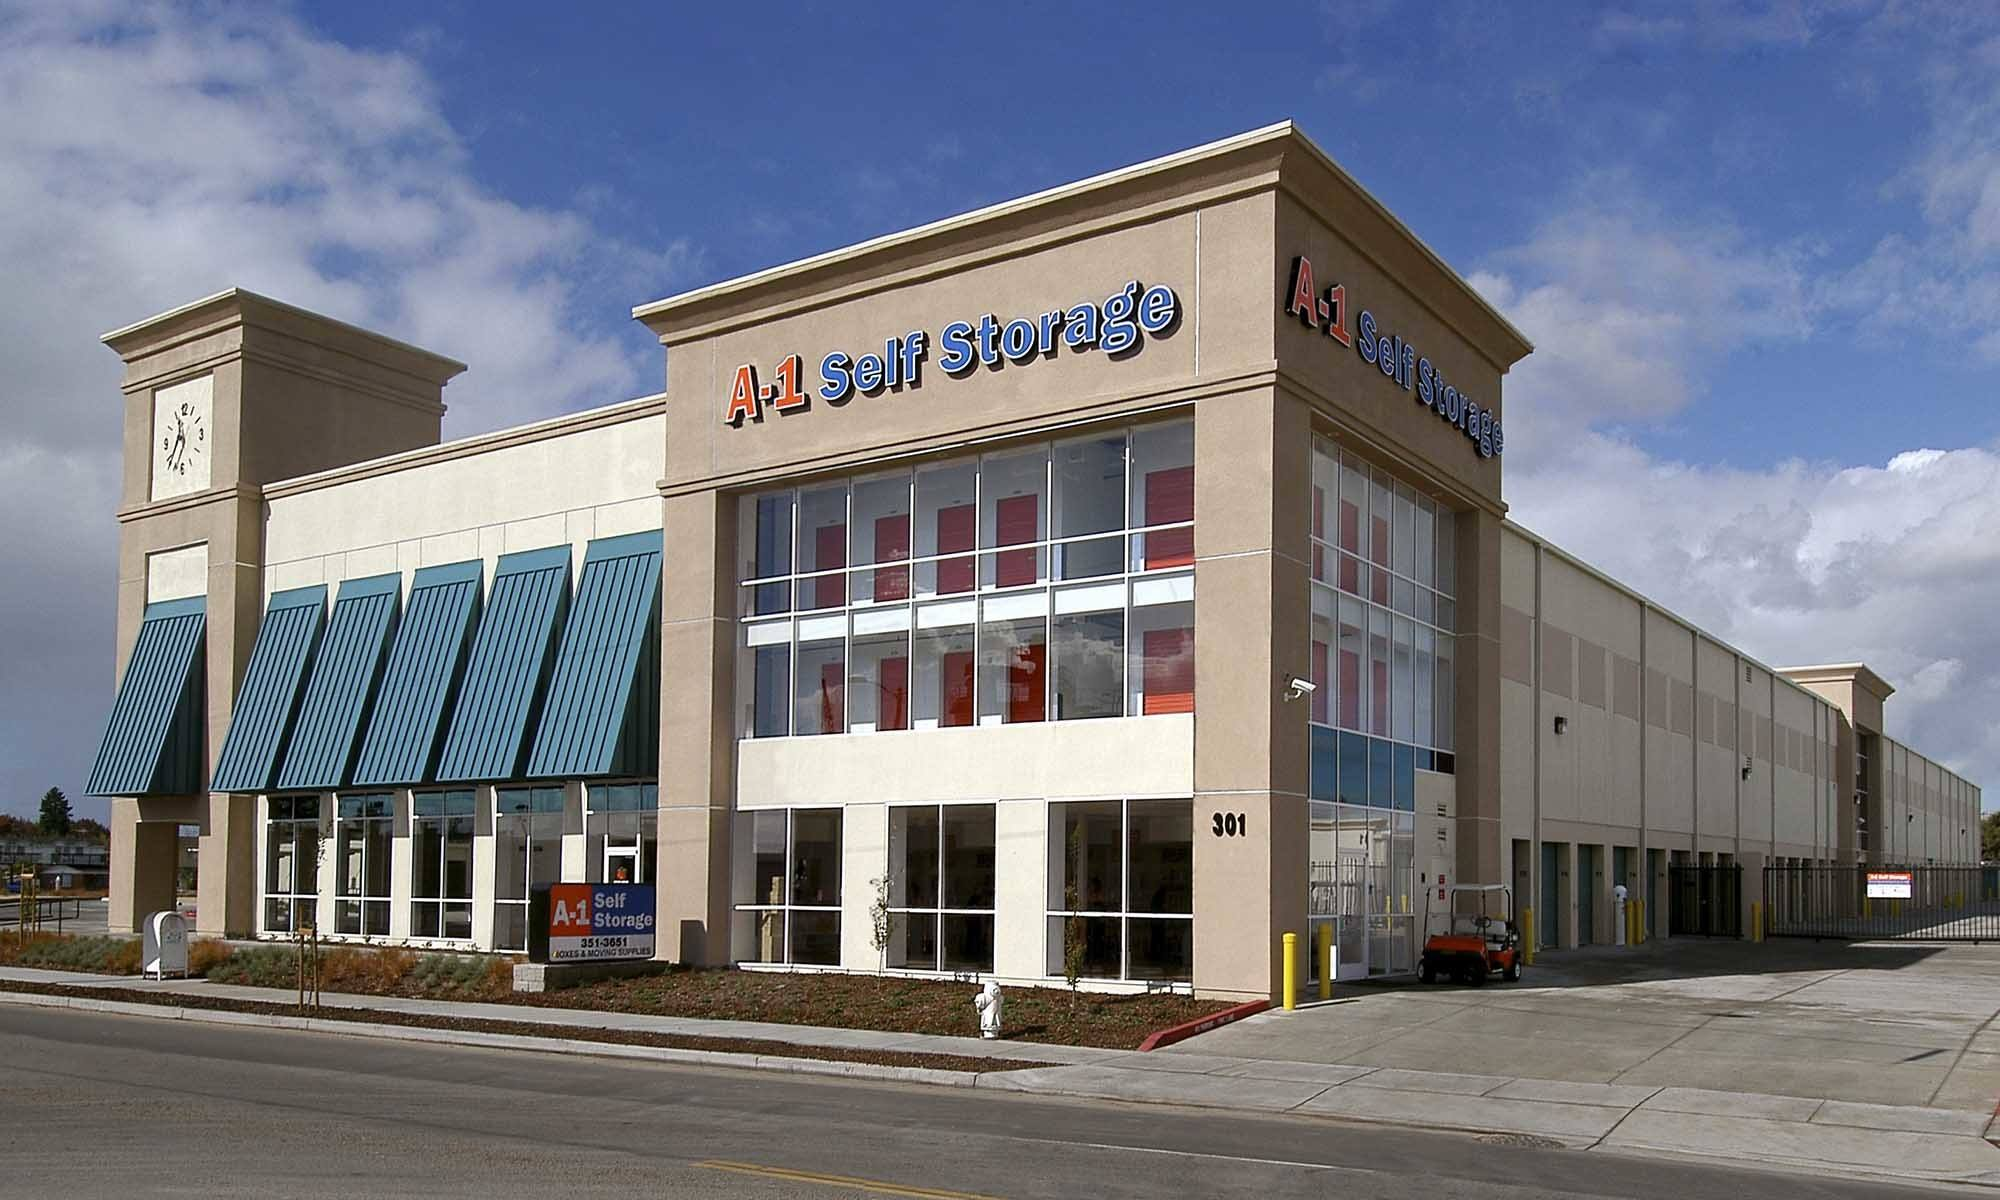 Self storage units high street bridge oakland ca a 1 self storage save moneyfind the right size for your needs solutioingenieria Images